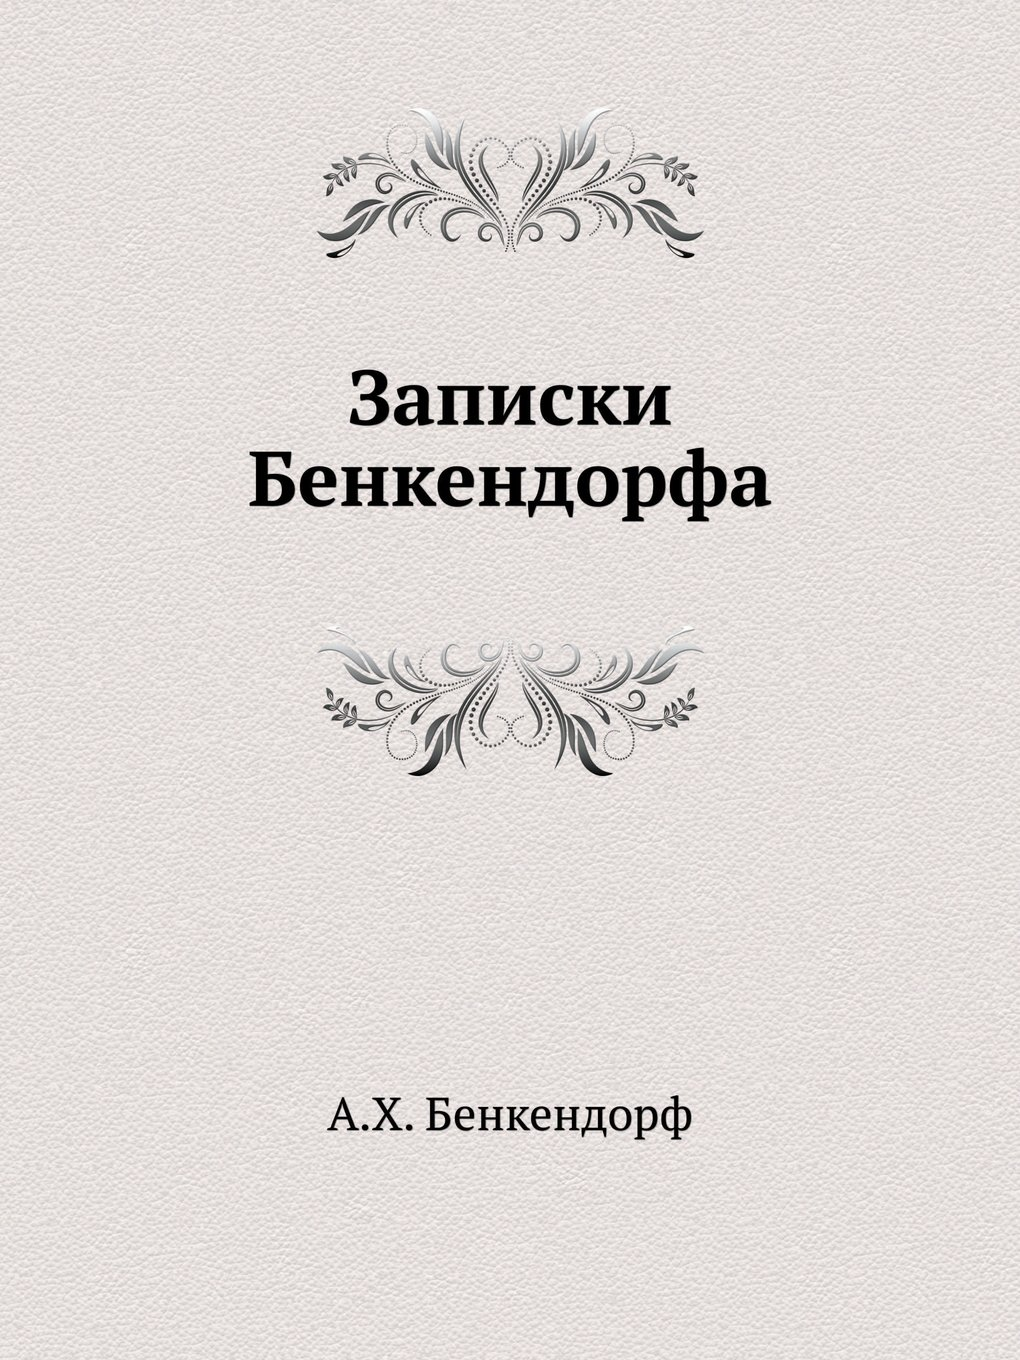 Read Online Notes of Benckendorf 1812. Great Patriotic War of 1813. Liberation of the Netherlands (Studia historica) (Russian Edition) pdf epub